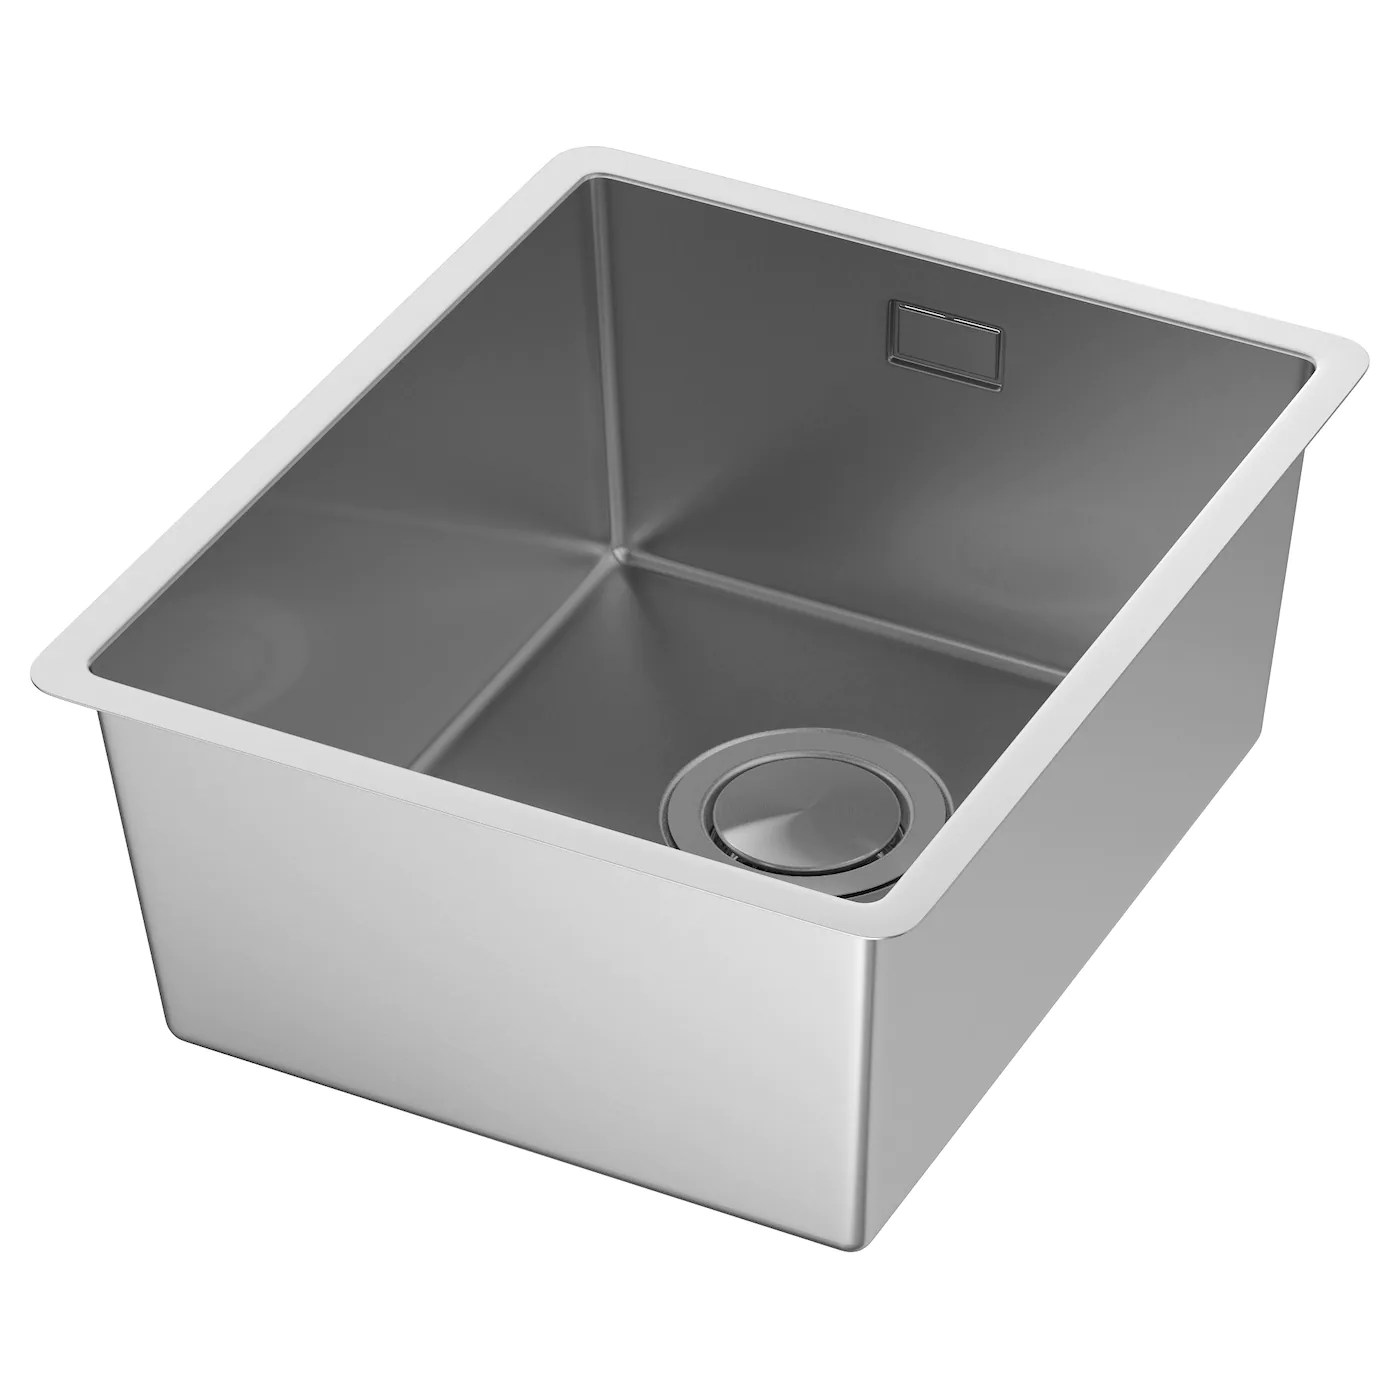 black sink kitchen countertop trends sinks taps ikea norrsjon inset 1 bowl 25 year guarantee read about the terms in